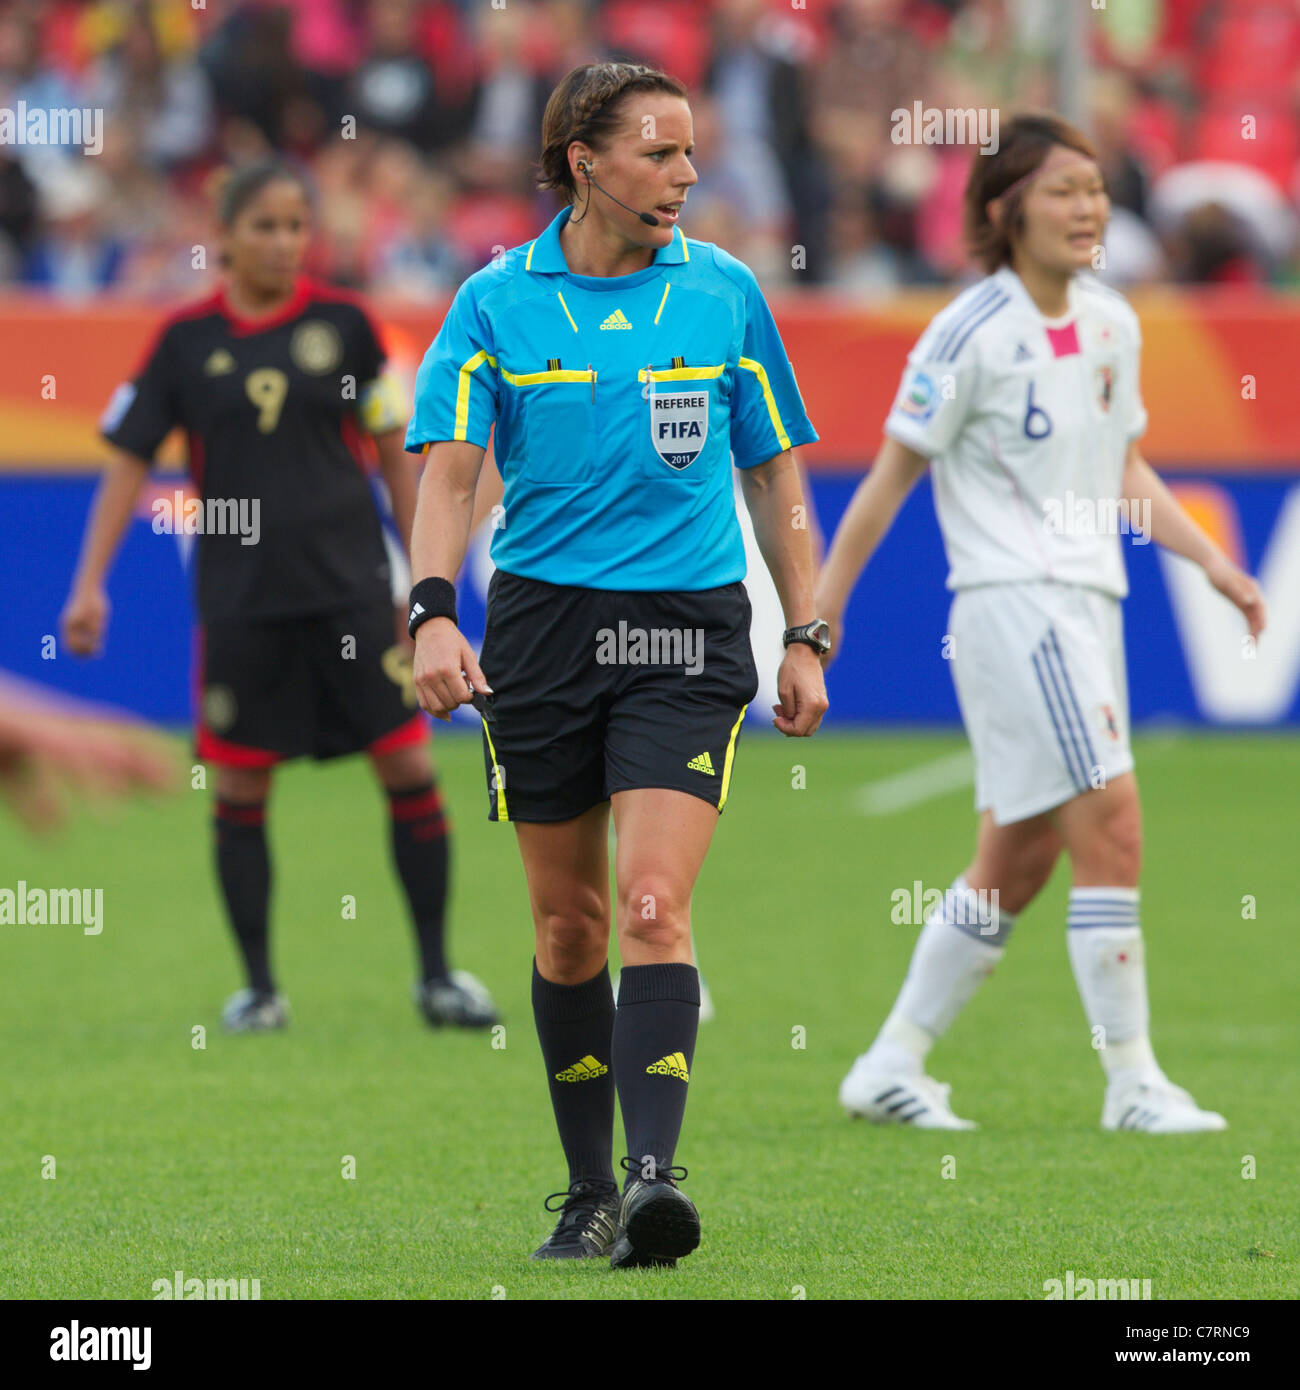 Referee Christina Pedersen officiates a FIFA Women's World Cup Group B match between Japan and Mexico July 1, - Stock Image